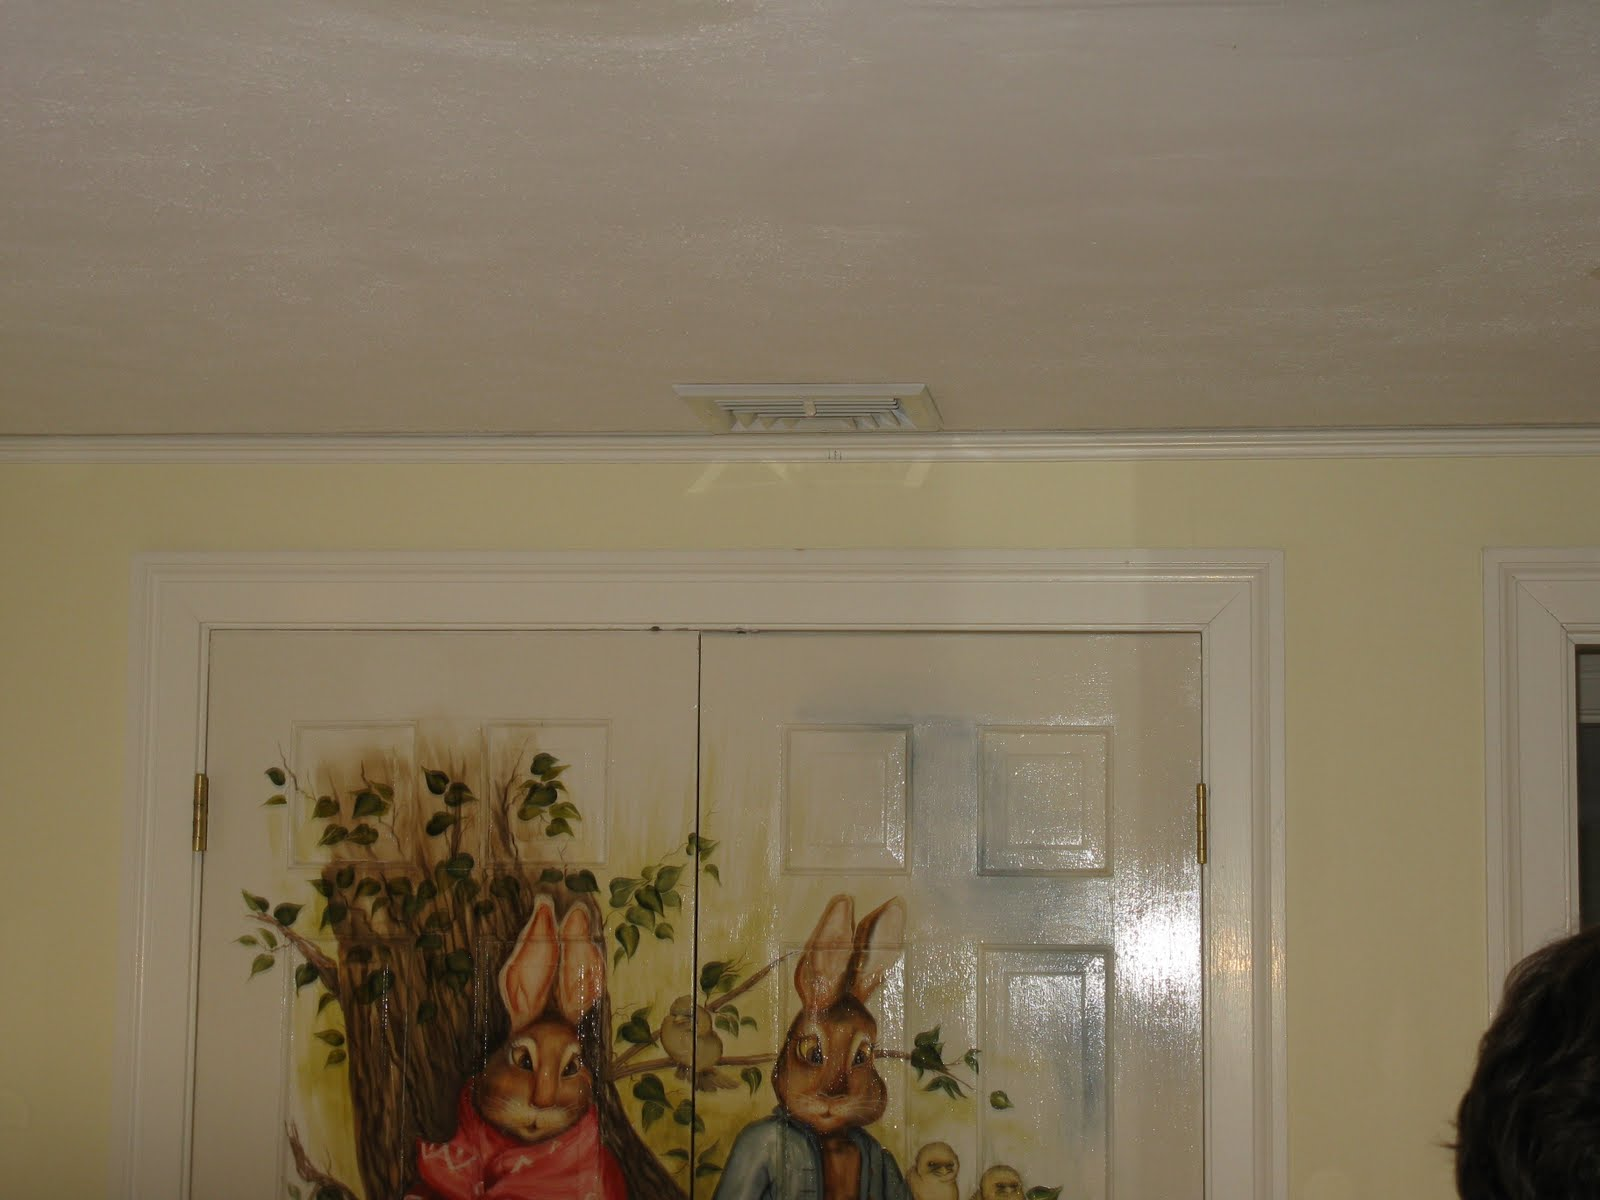 How to cut base molding around wall vent - New Vent Duct Installed And Insulated